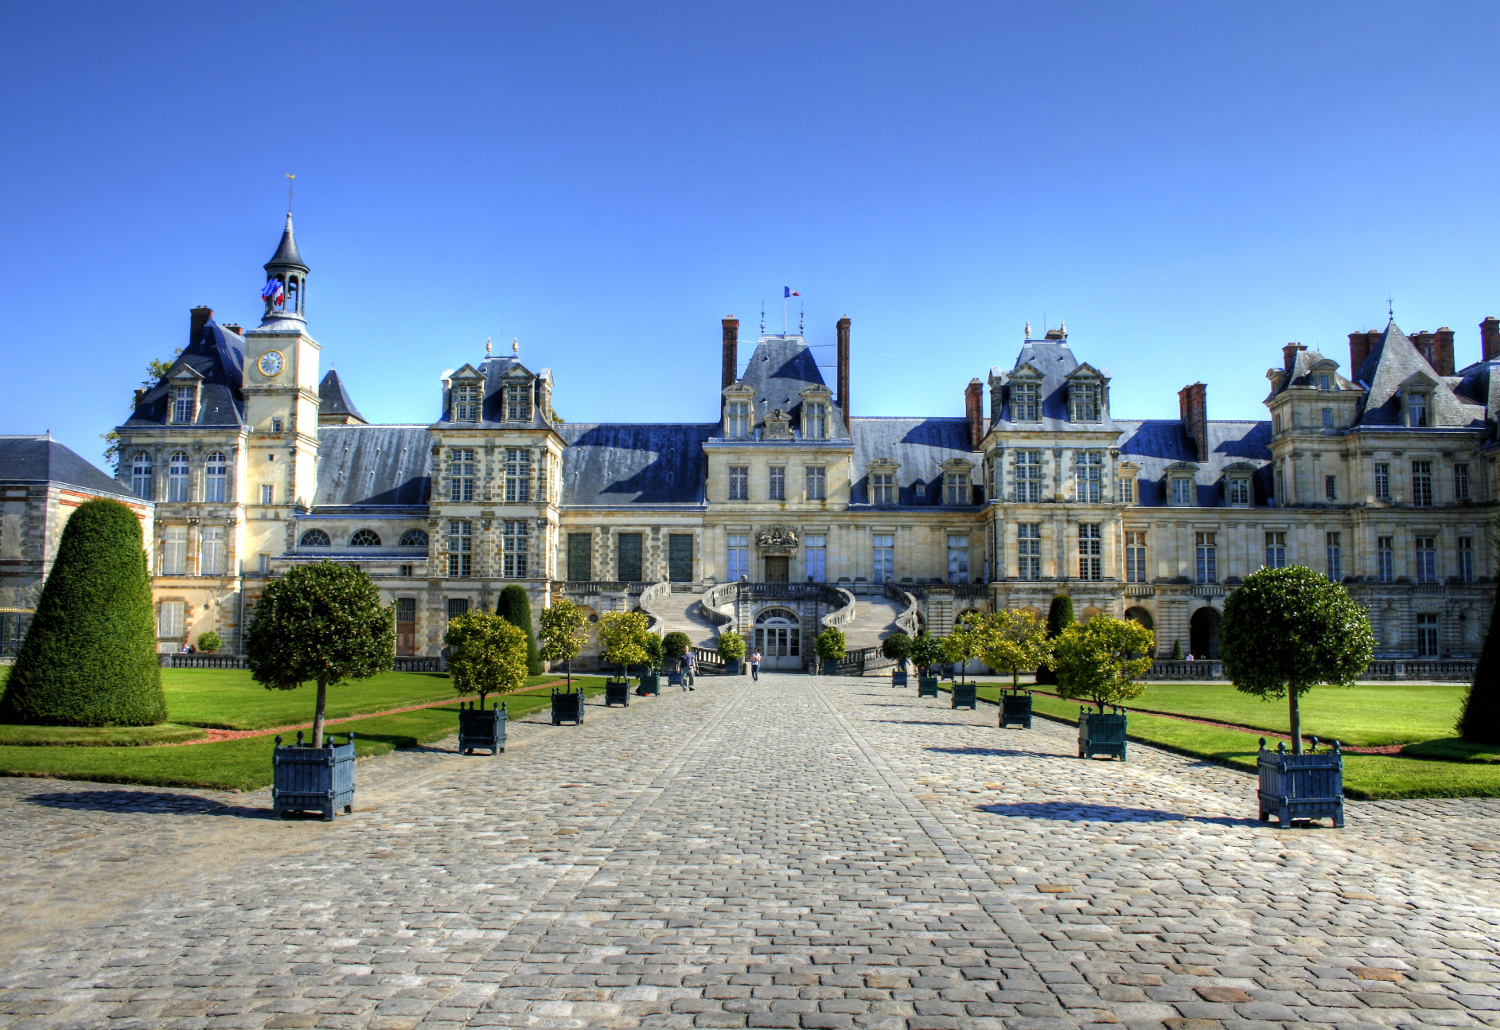 Chateau de Fontainebleau, #France #travel #best #photos and #places